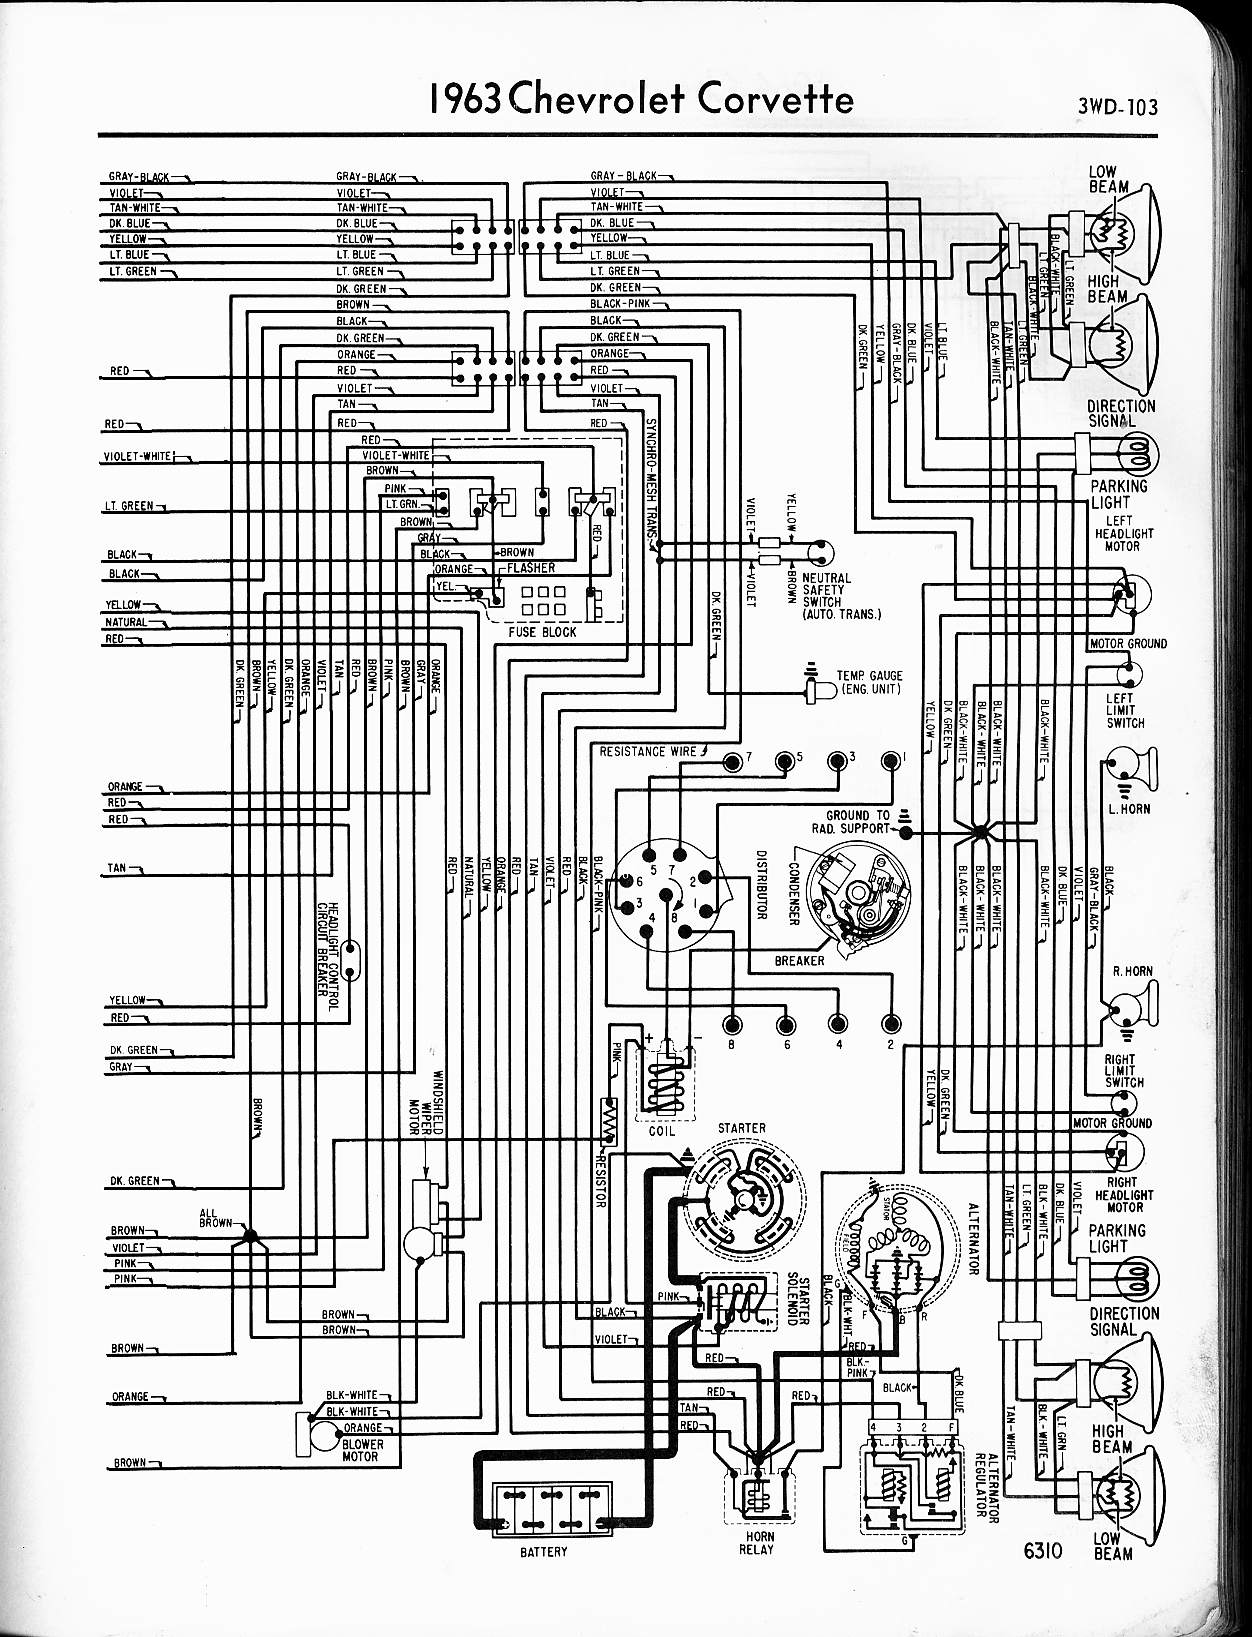 MWireChev63_3WD 103 57 65 chevy wiring diagrams 1963 chevrolet c10 wiring diagram at cos-gaming.co